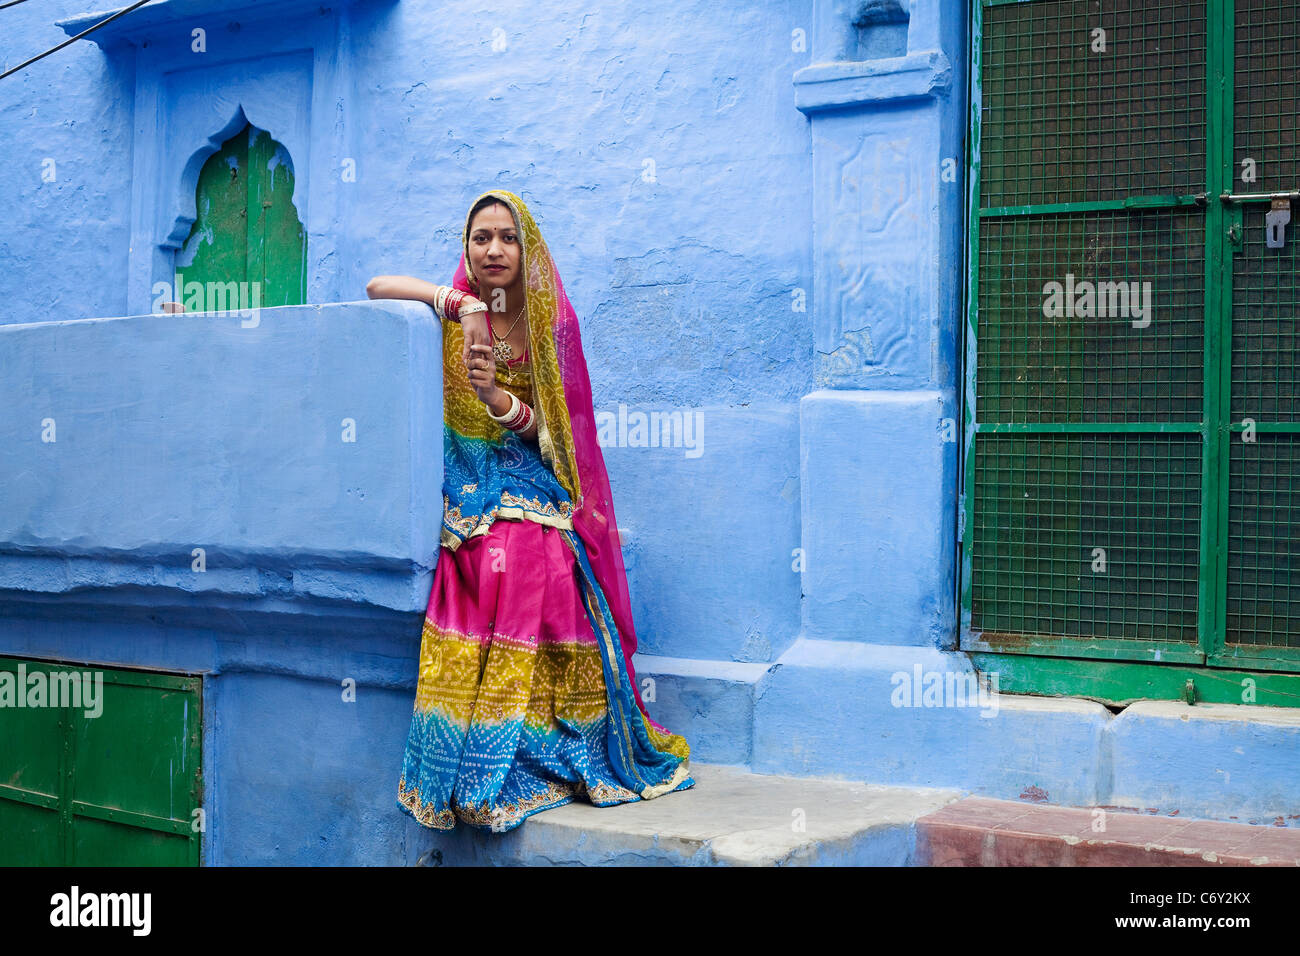 A woman of Jodhpur, India in Rajasthan state in traditional dress in front of one of the city's famous blue - Stock Image